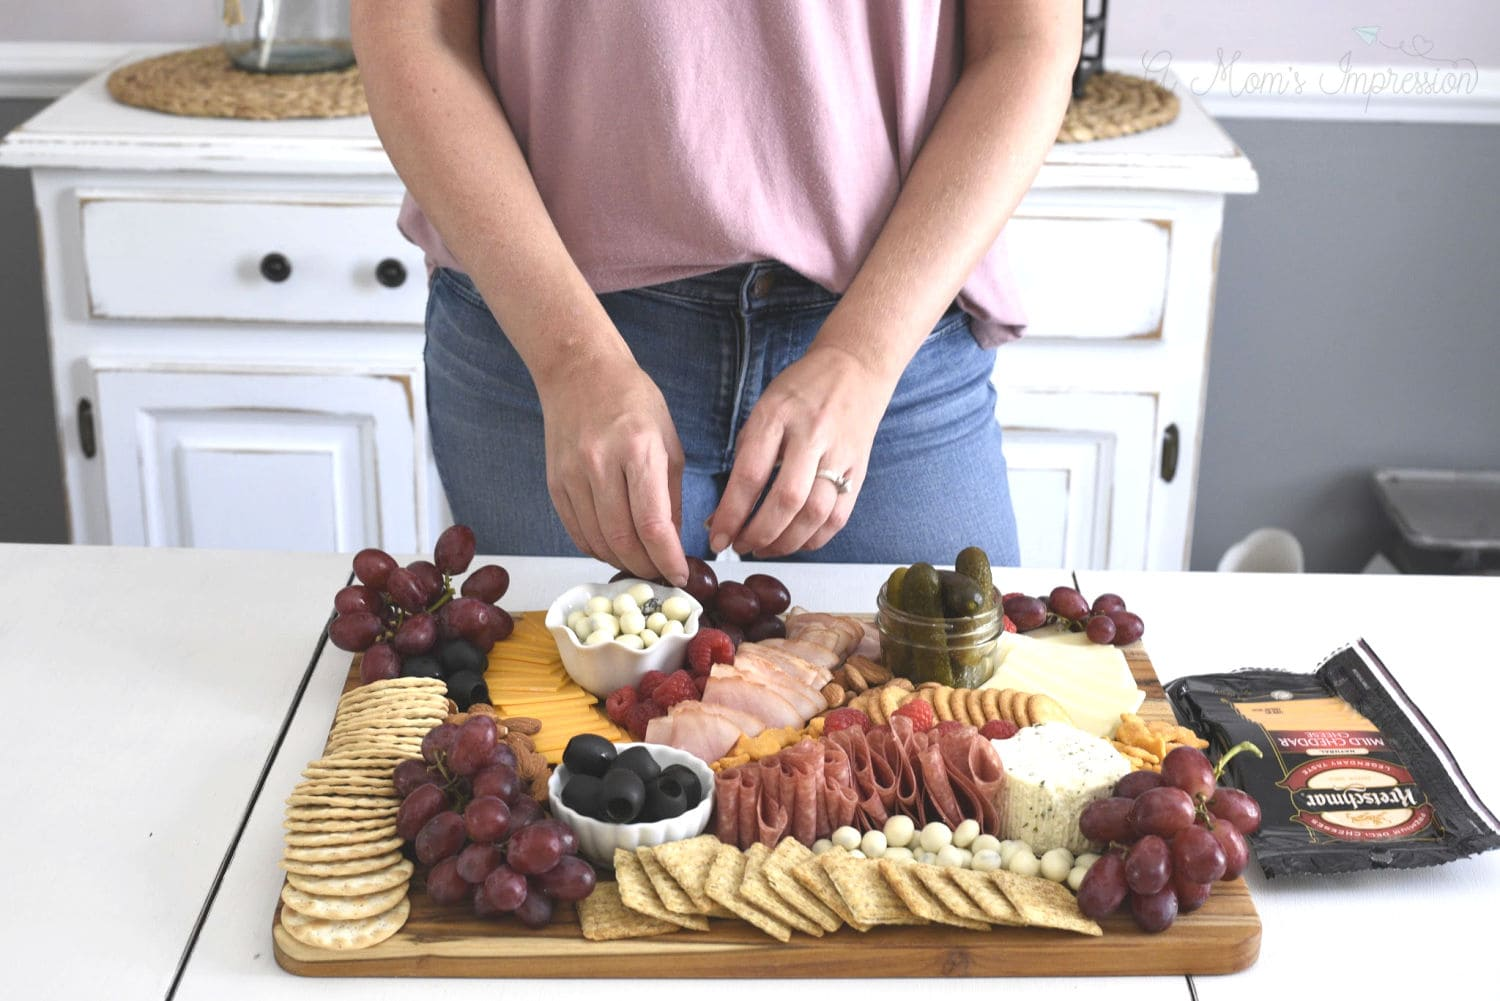 a person making a charcuterie board